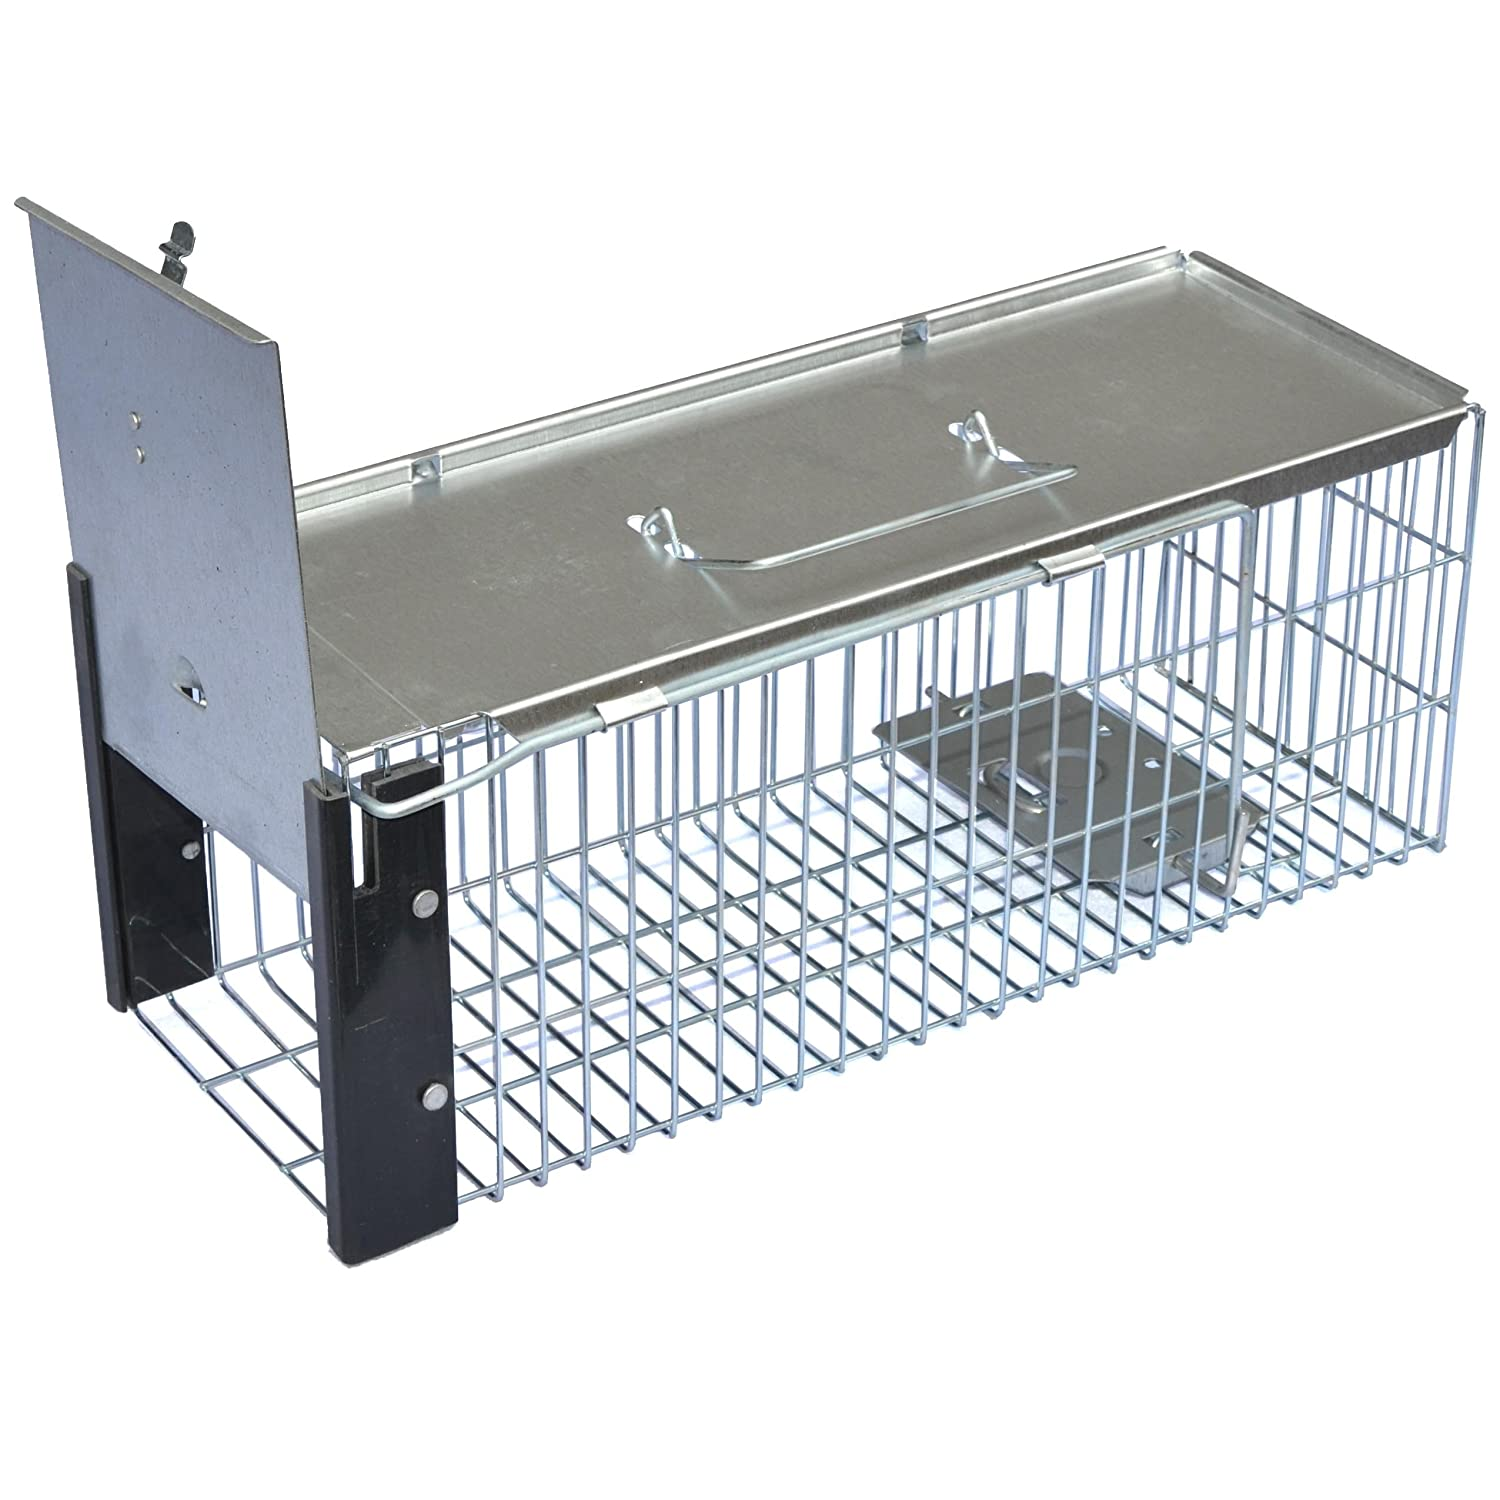 Easipet Humane Rat Trap, Heavy Duty Metal Live Vermin or Rodent Catcher